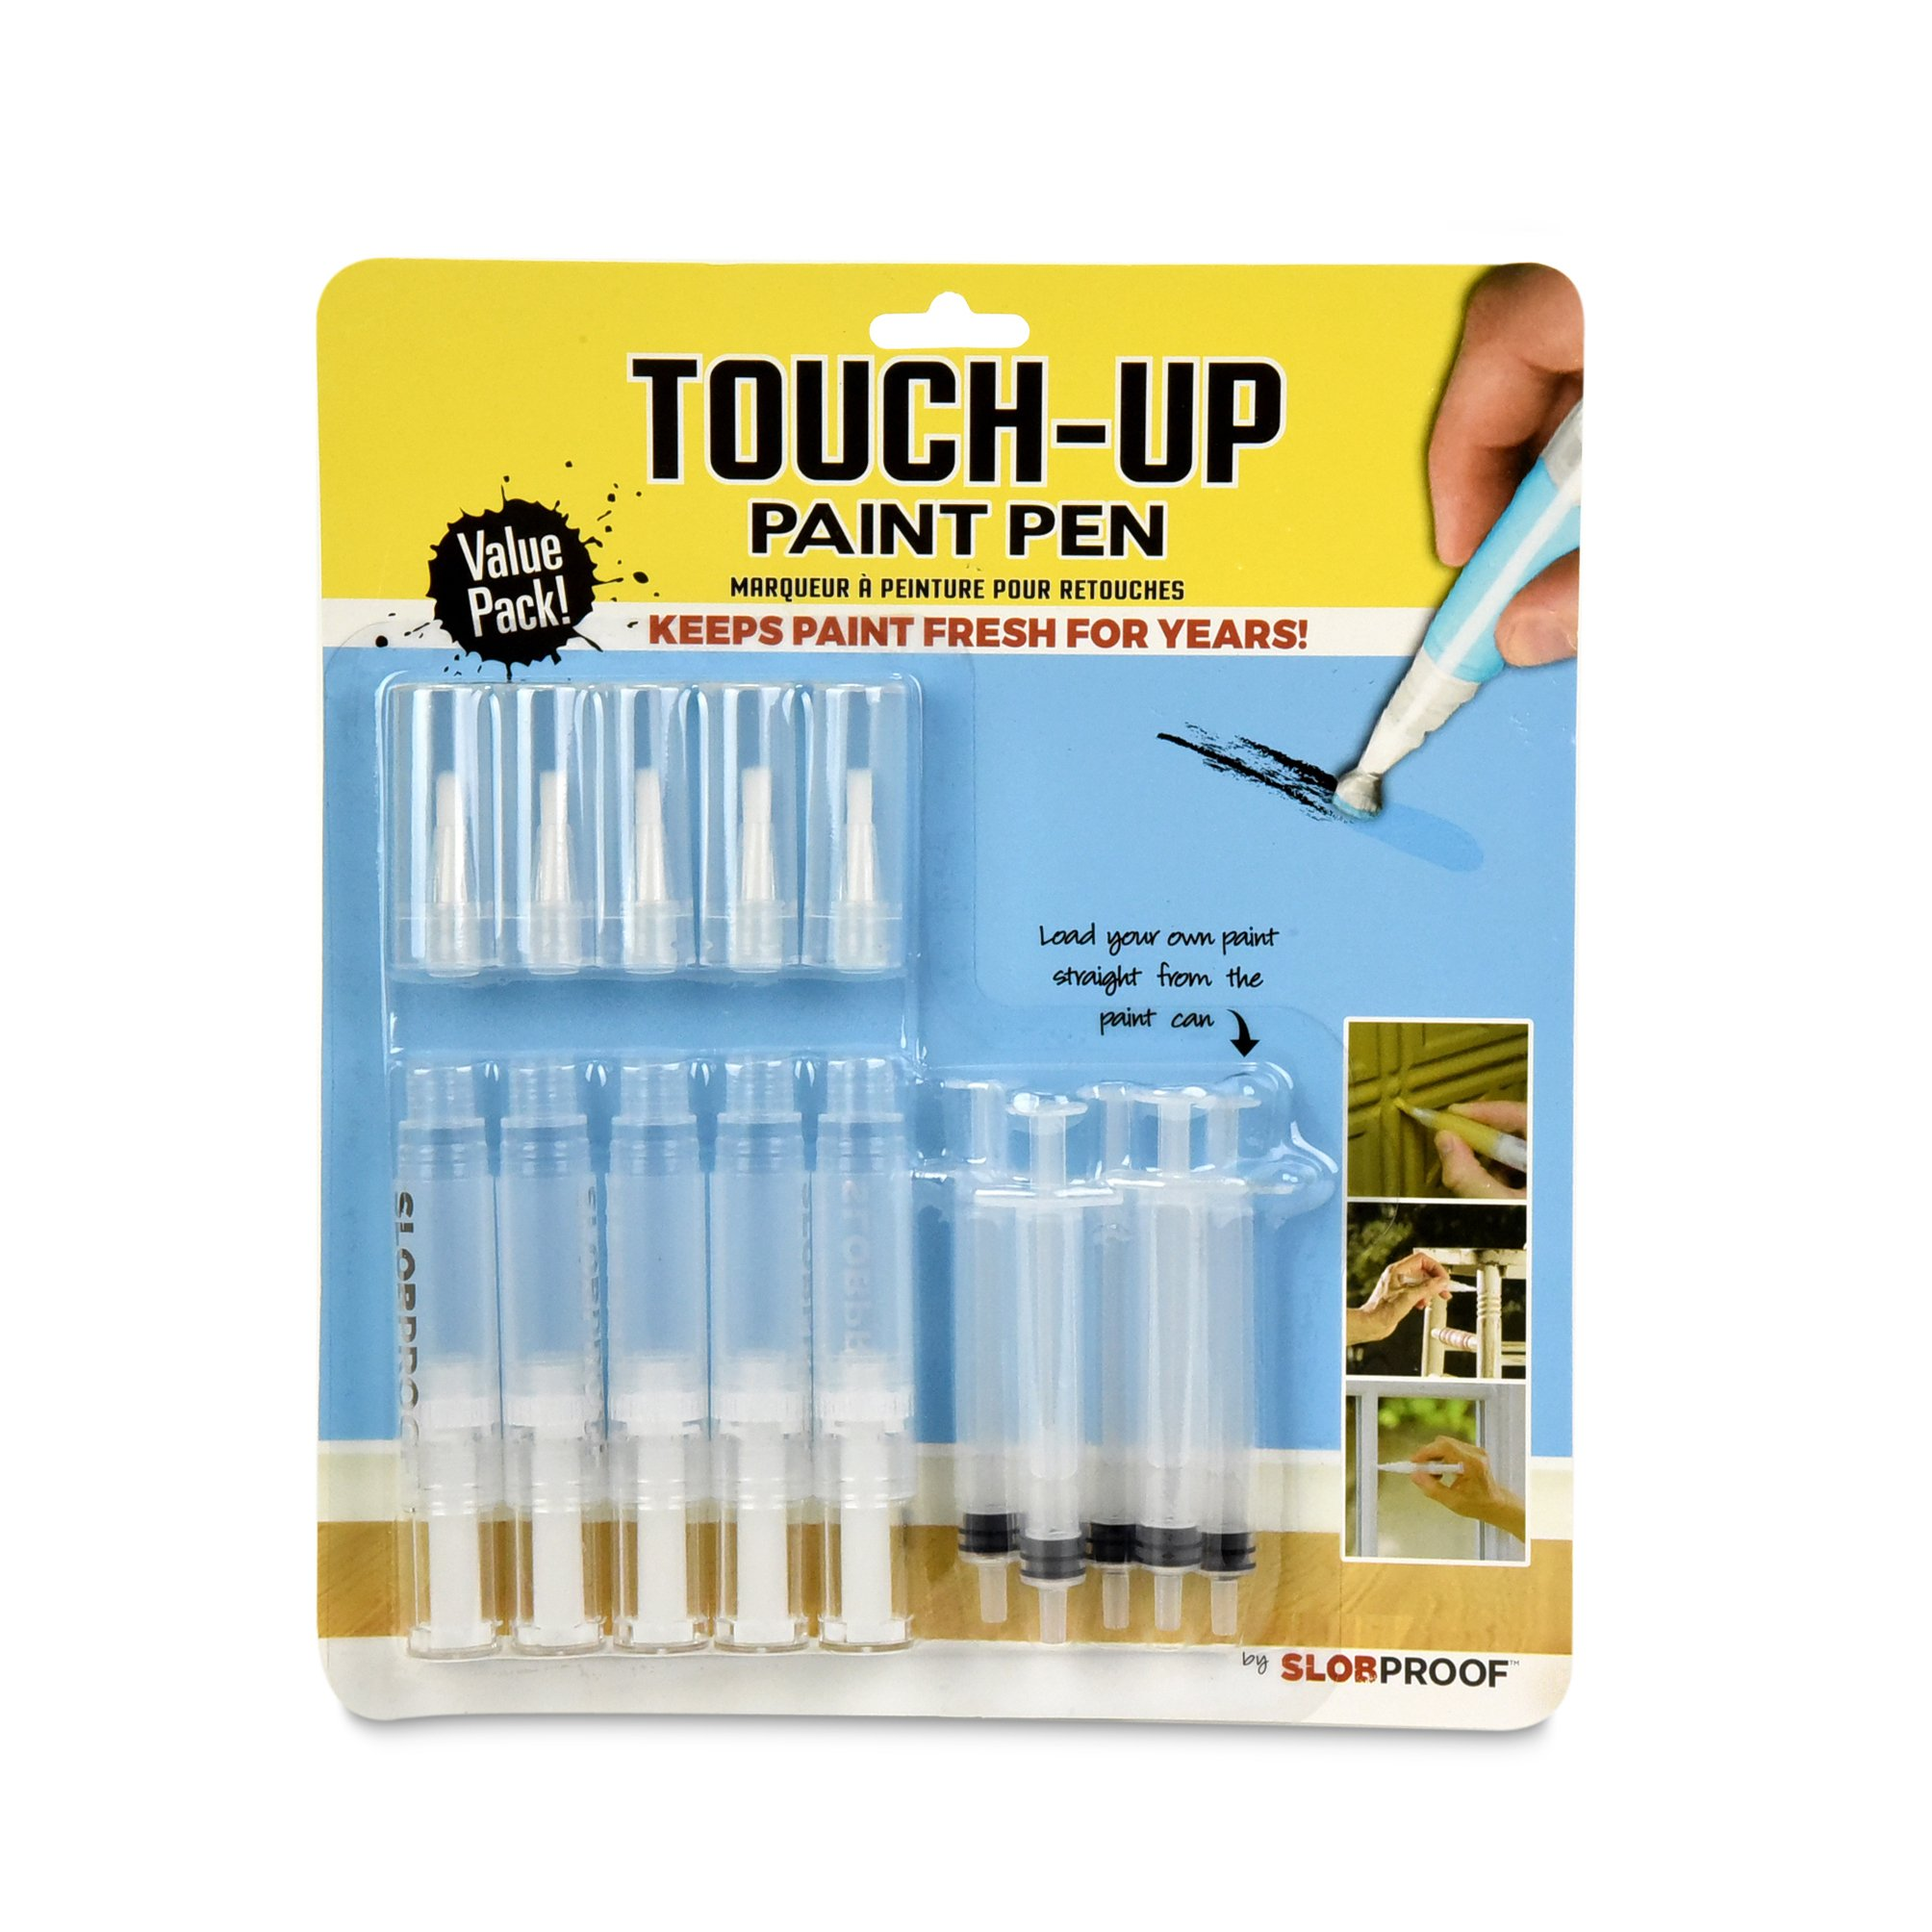 Slobproof Touch-Up Paint Pen   Fills with Any Paint for Color-Matched Touch Ups to Scuffed Walls and Trim   Keeps Paint Fresh Inside for At Least Seven Years   Includes Two Fine Brush-Tips, 5-Pack